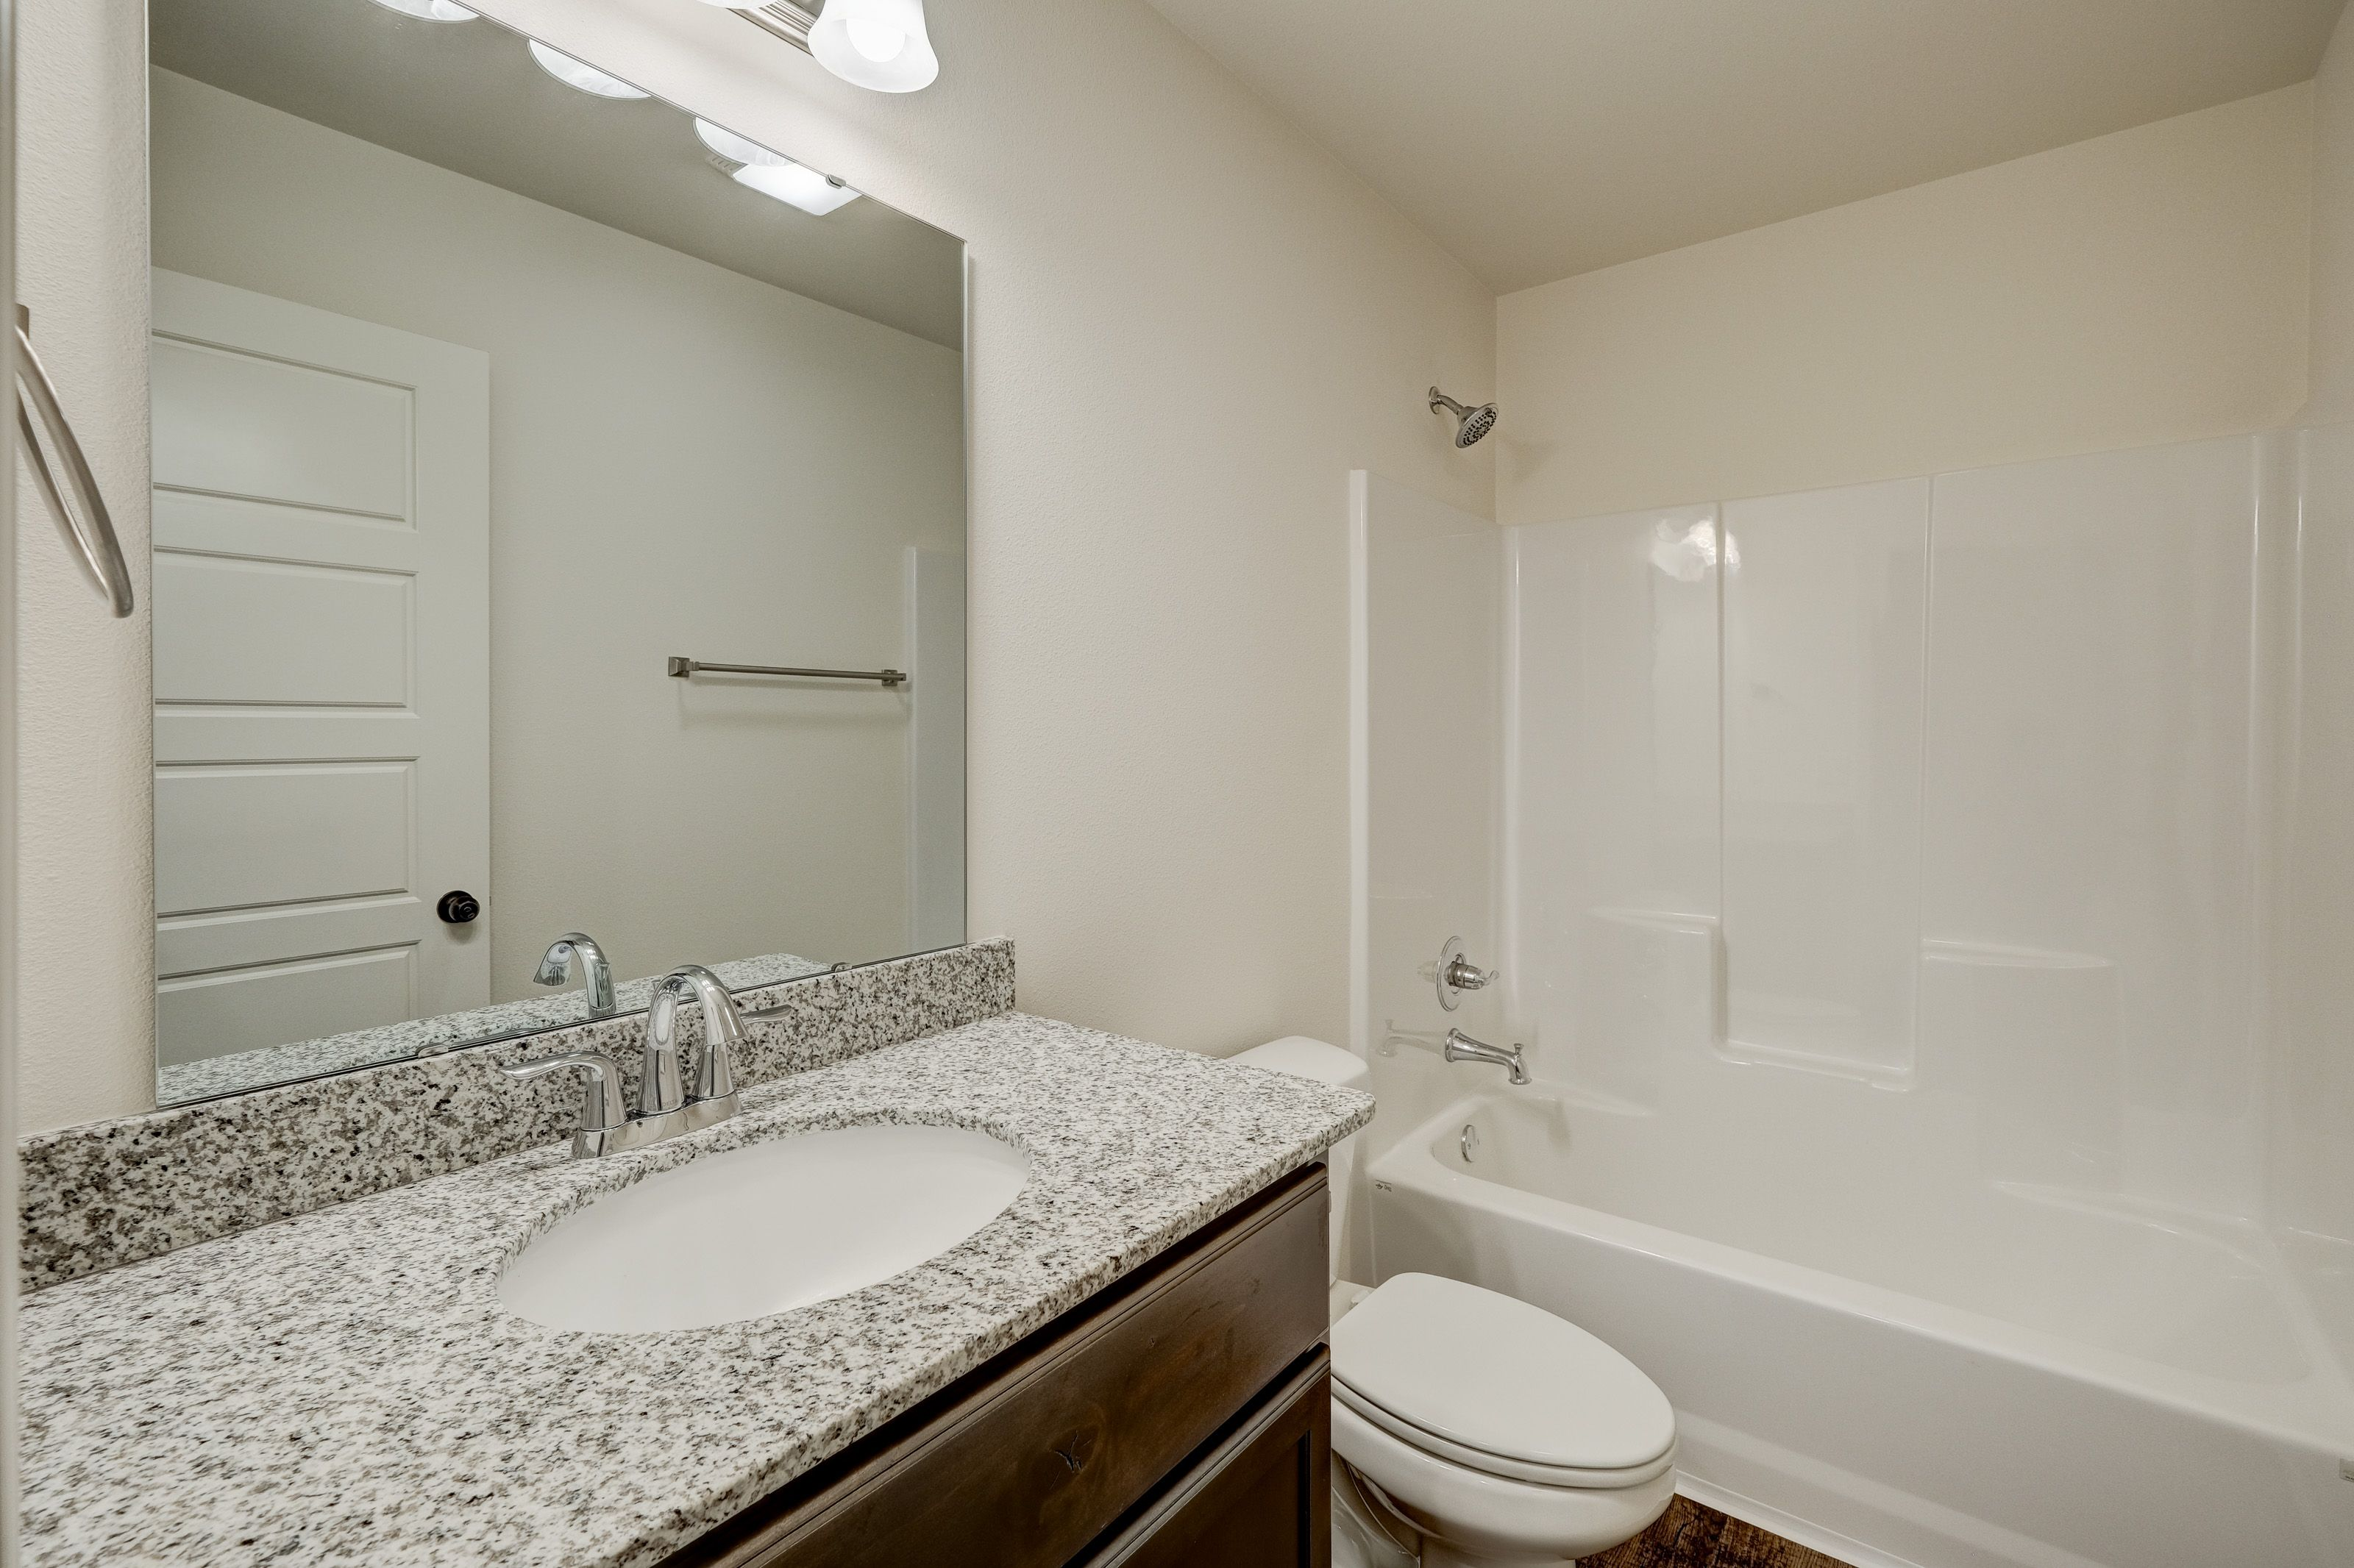 Bathroom featured in the 1100C-KI Series By Schuber Mitchell Homes in Fayetteville, AR